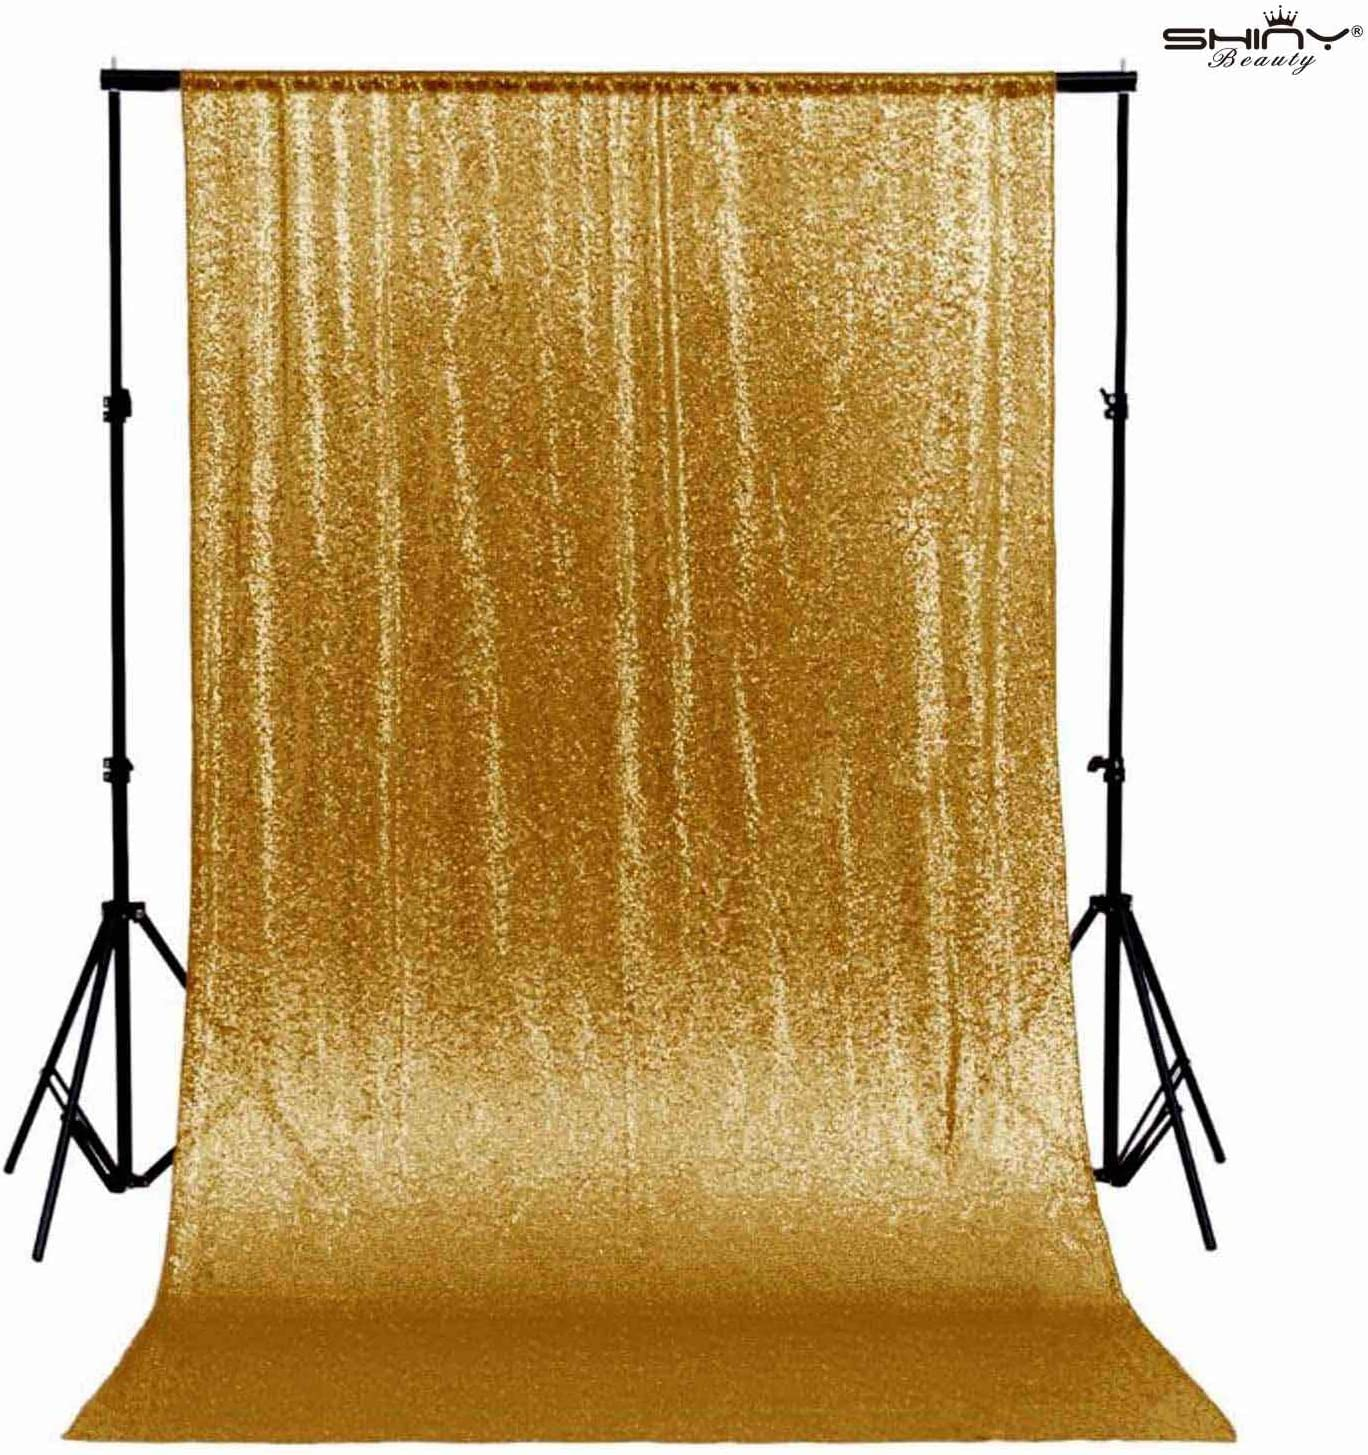 ShiDianYi 6FTX8FT Gold Shimmer Sequin Fabric Photography Backdrop